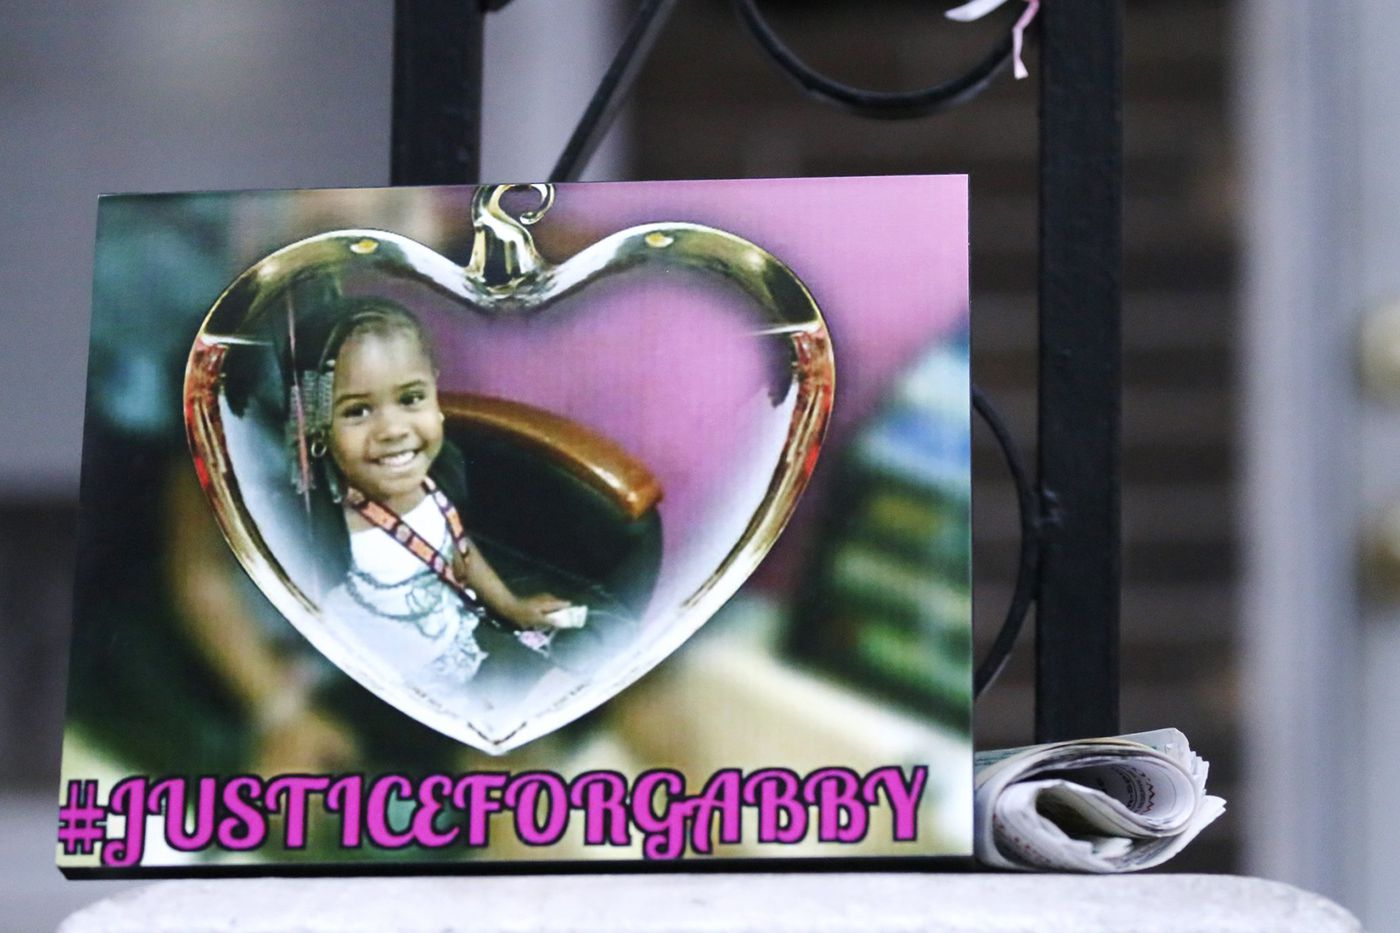 Jury convicts man in fatal shooting of 8-year-old Camden girl